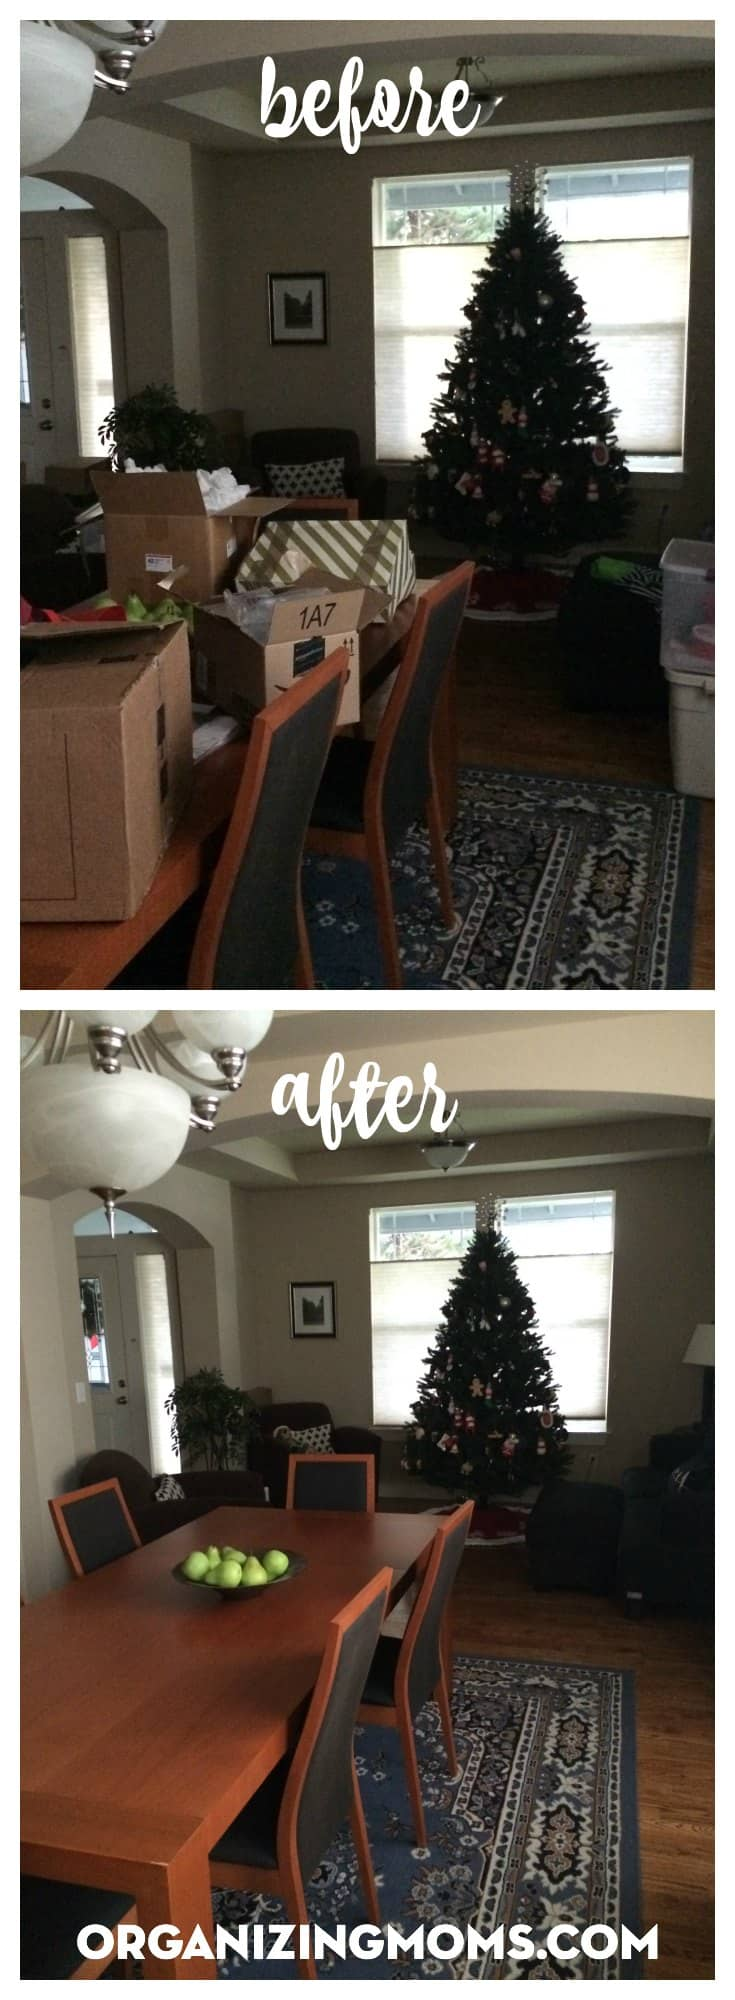 It's crazy how much you can do in 10 minutes. This is ten minutes of decluttering and tidying up Christmas decoration stuff.